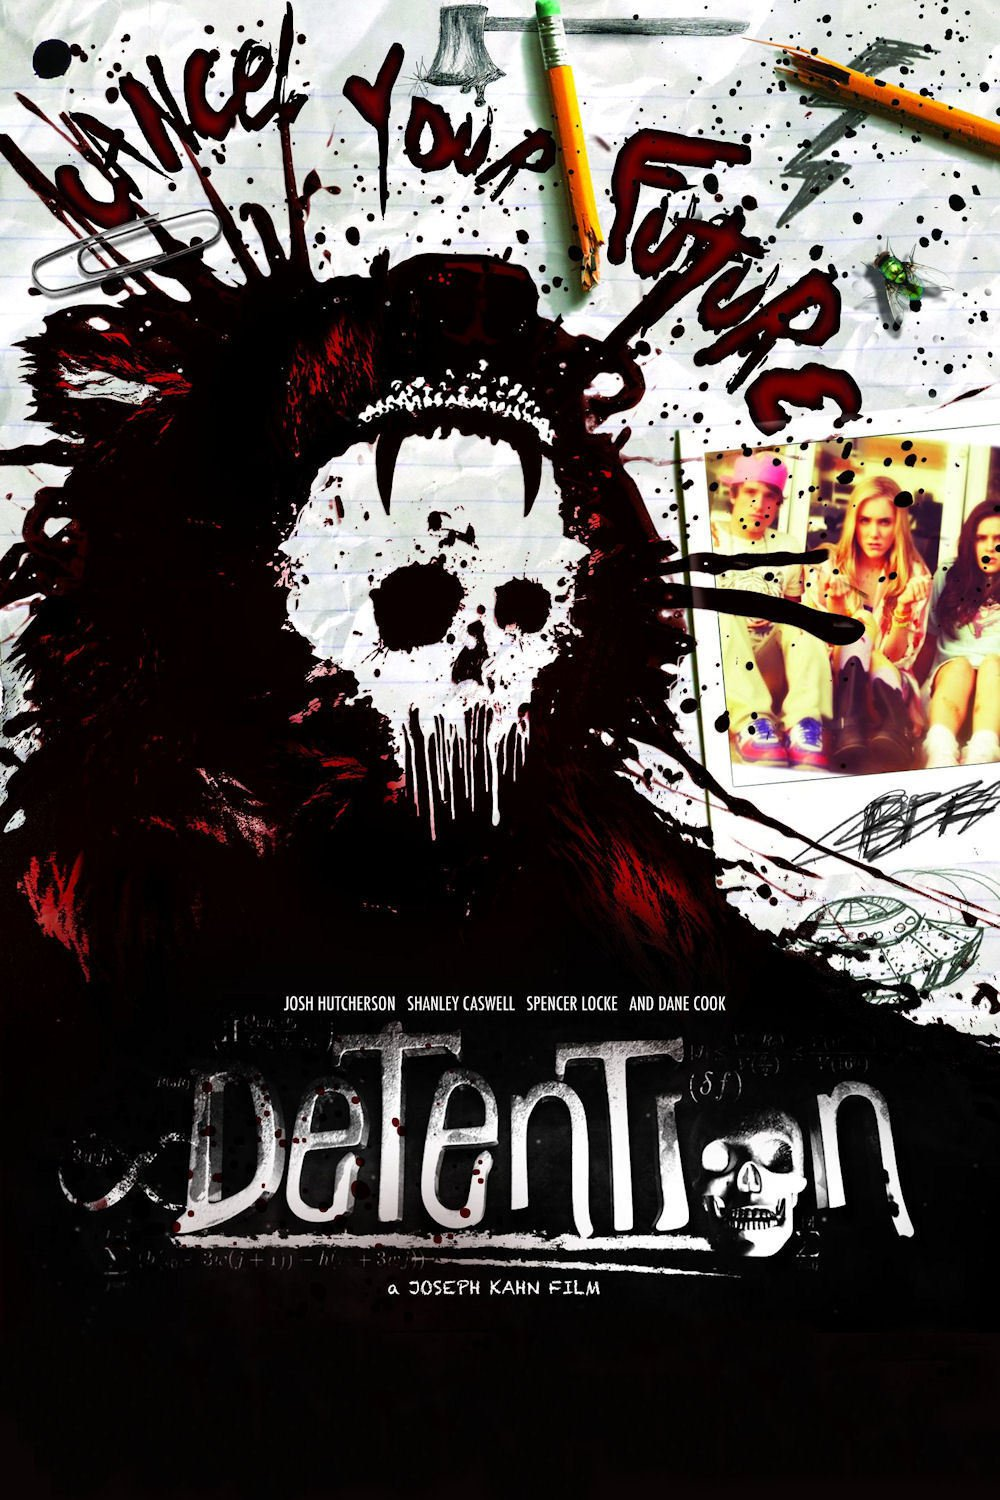 Regarder Detention en streaming gratuit